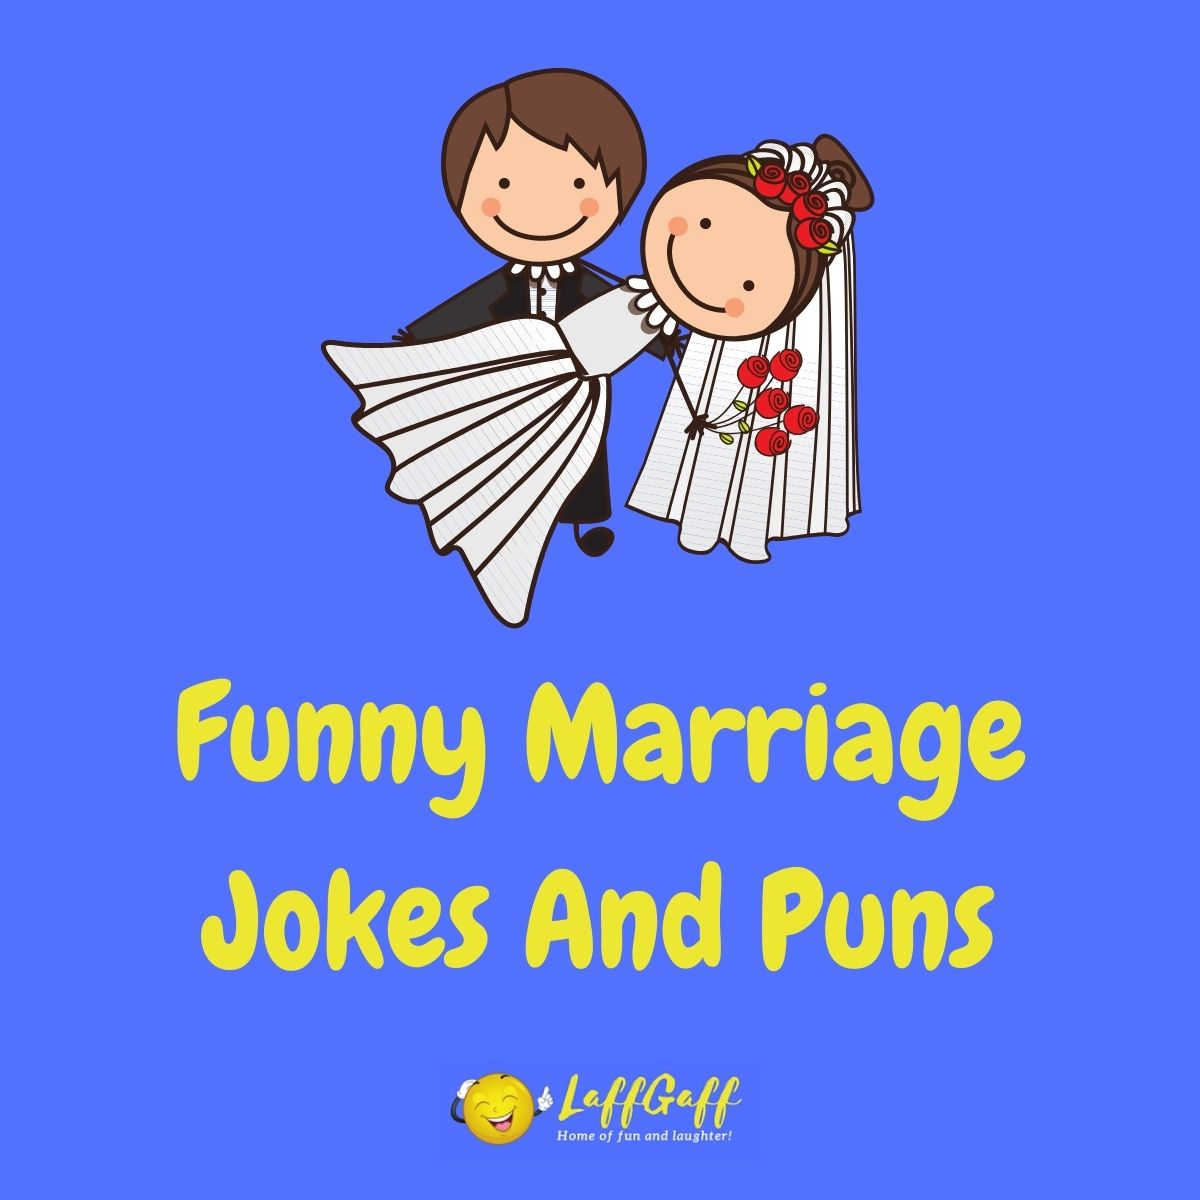 Featured image for a page of funny marriage jokes and puns.